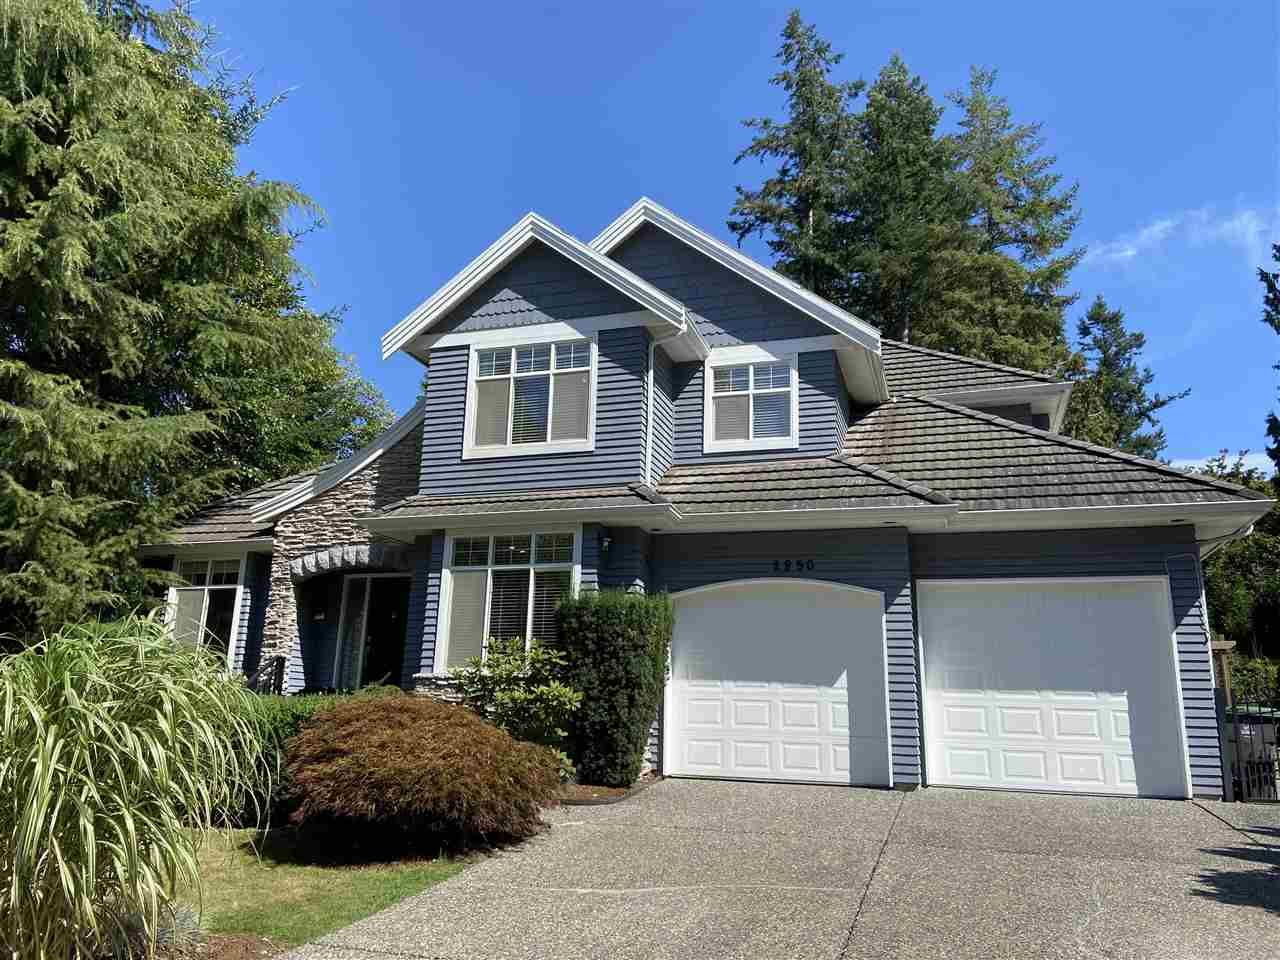 """Main Photo: 2850 139 Street in Surrey: Elgin Chantrell House for sale in """"West Elgin"""" (South Surrey White Rock)  : MLS®# R2485215"""